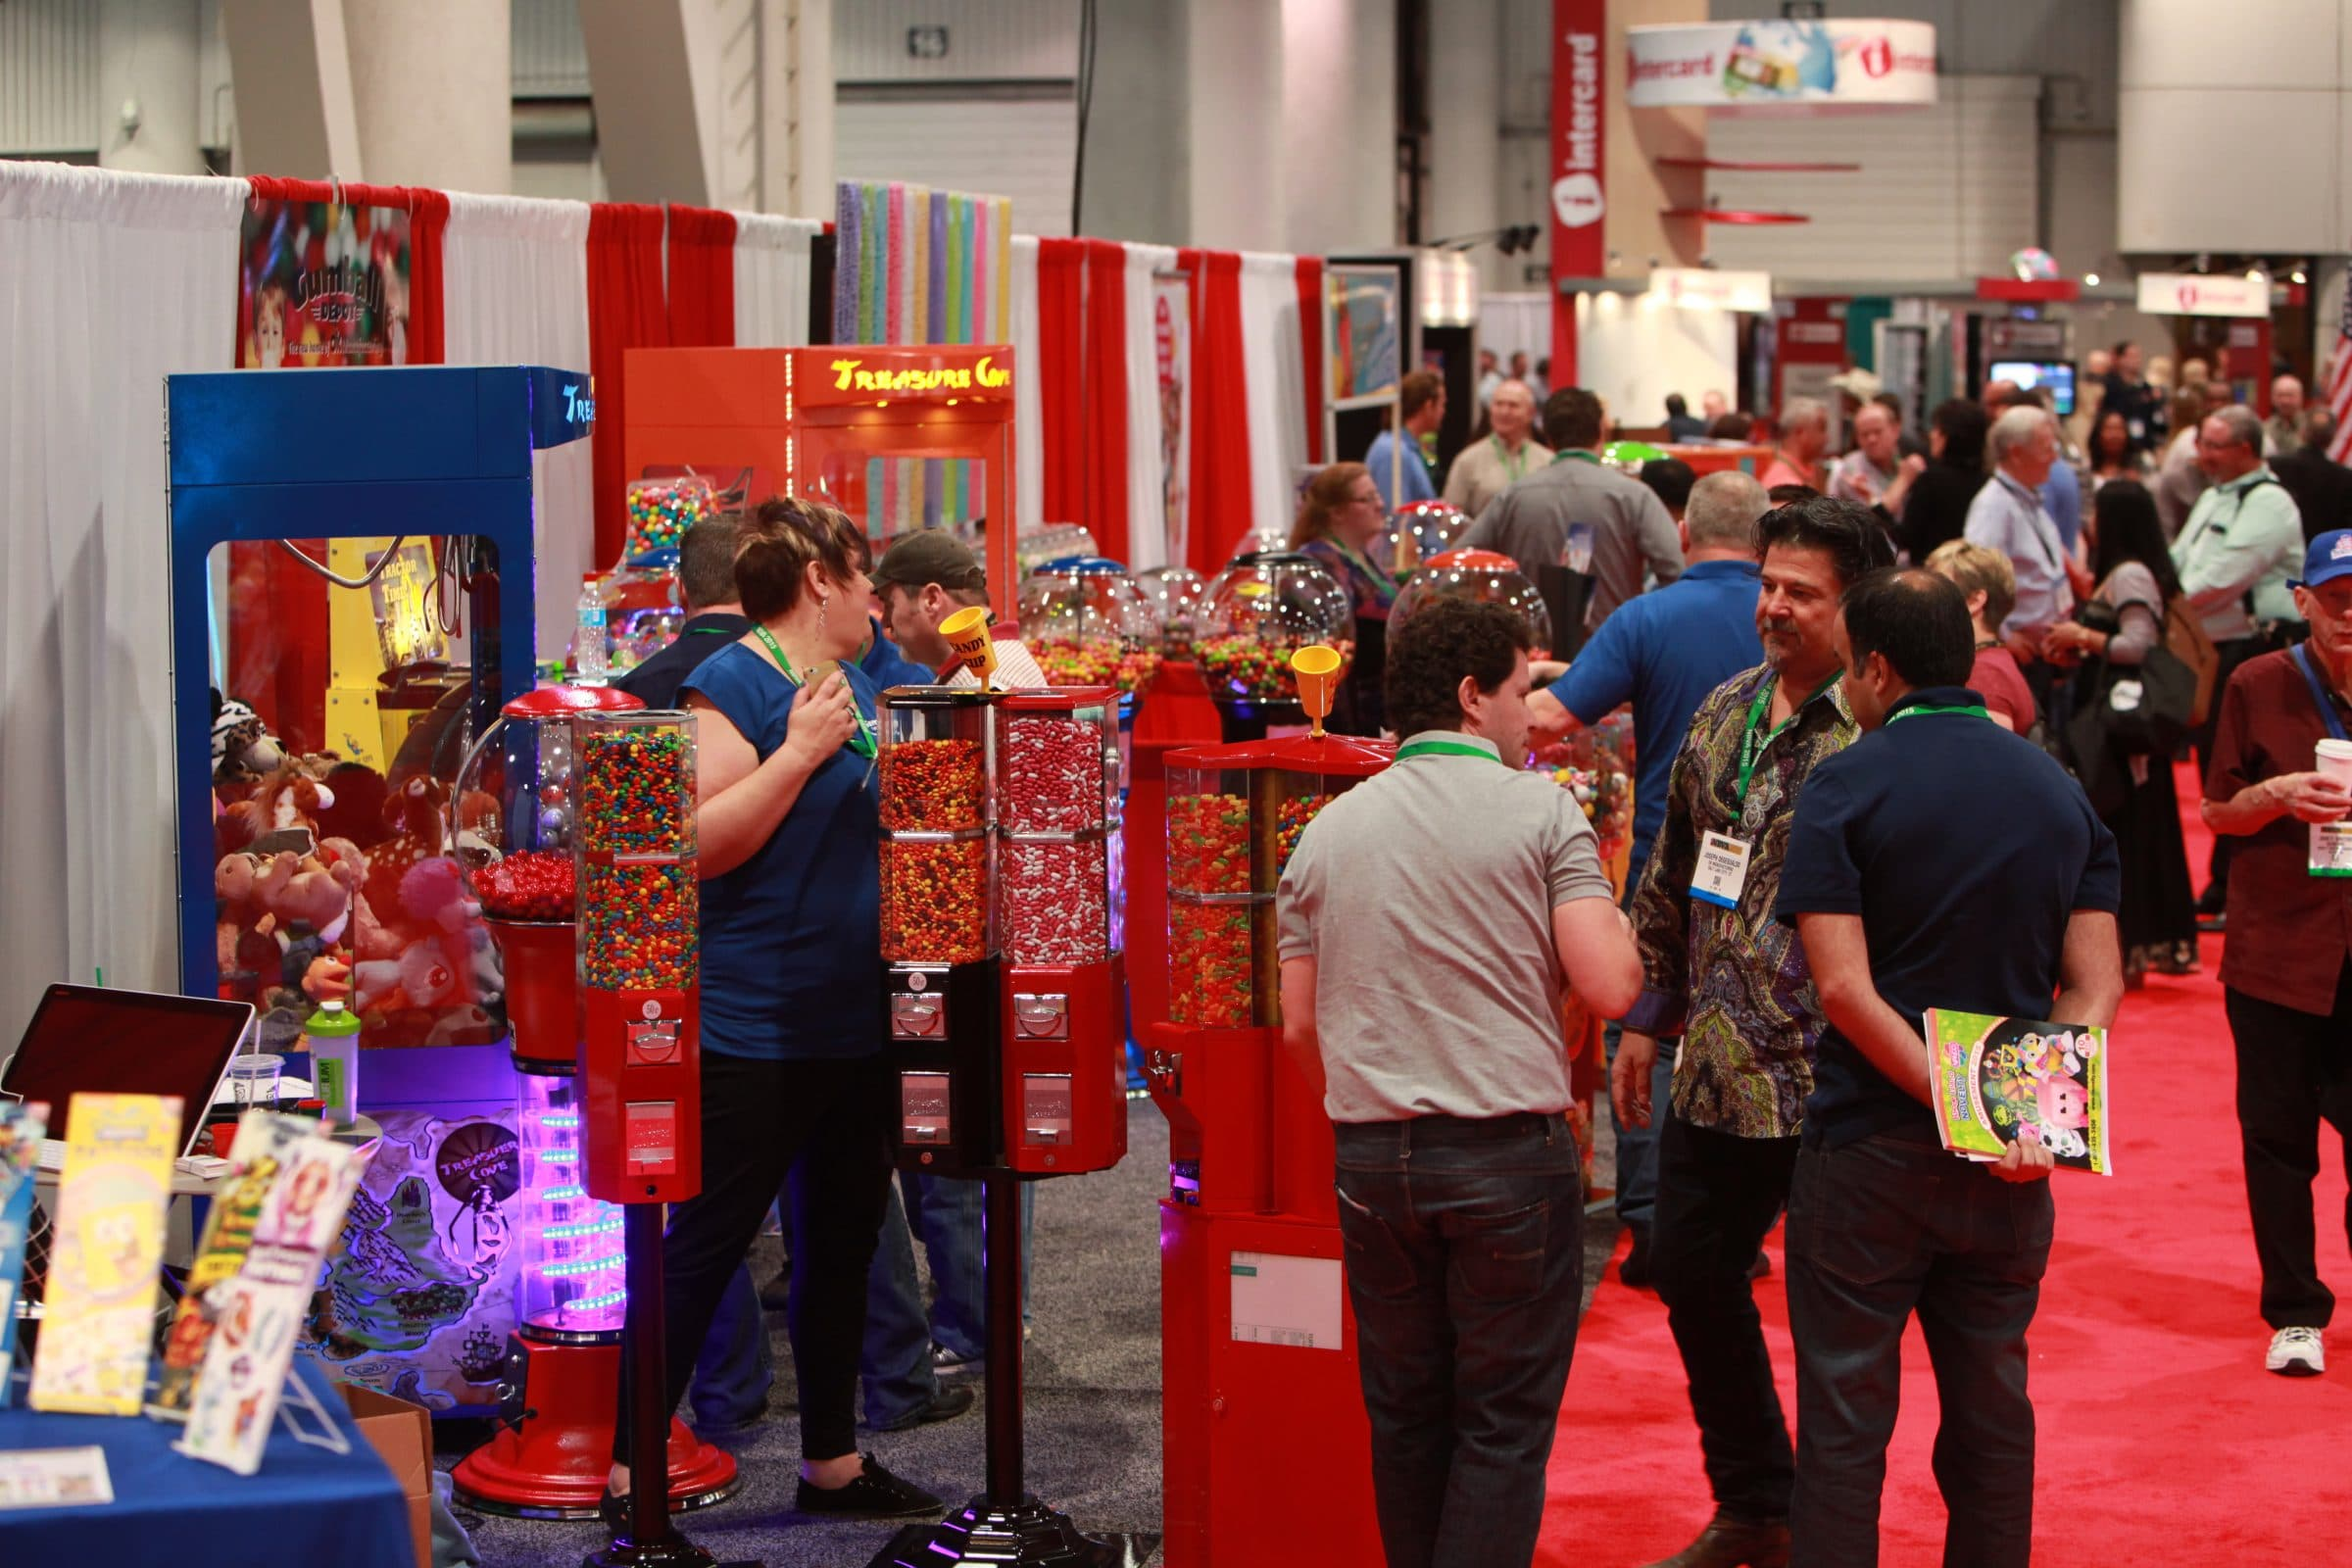 2018 Conference & Tradeshow